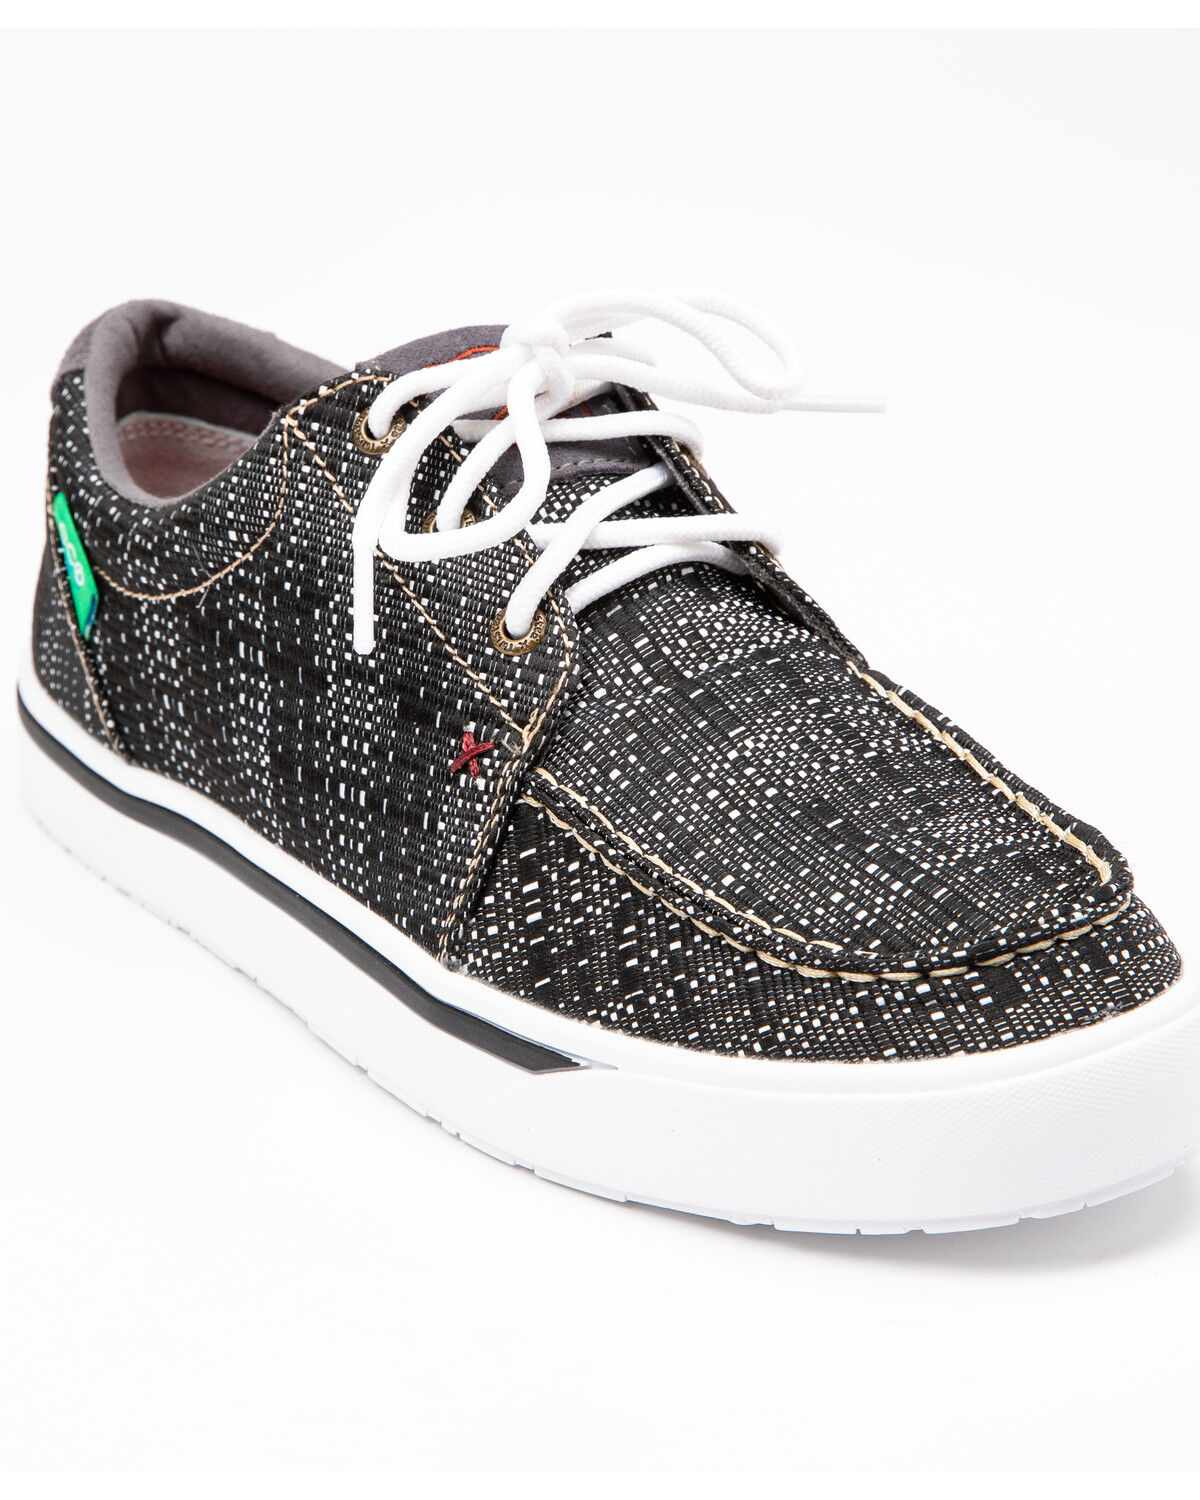 ECO Casual Athletic Shoes - Moc Toe